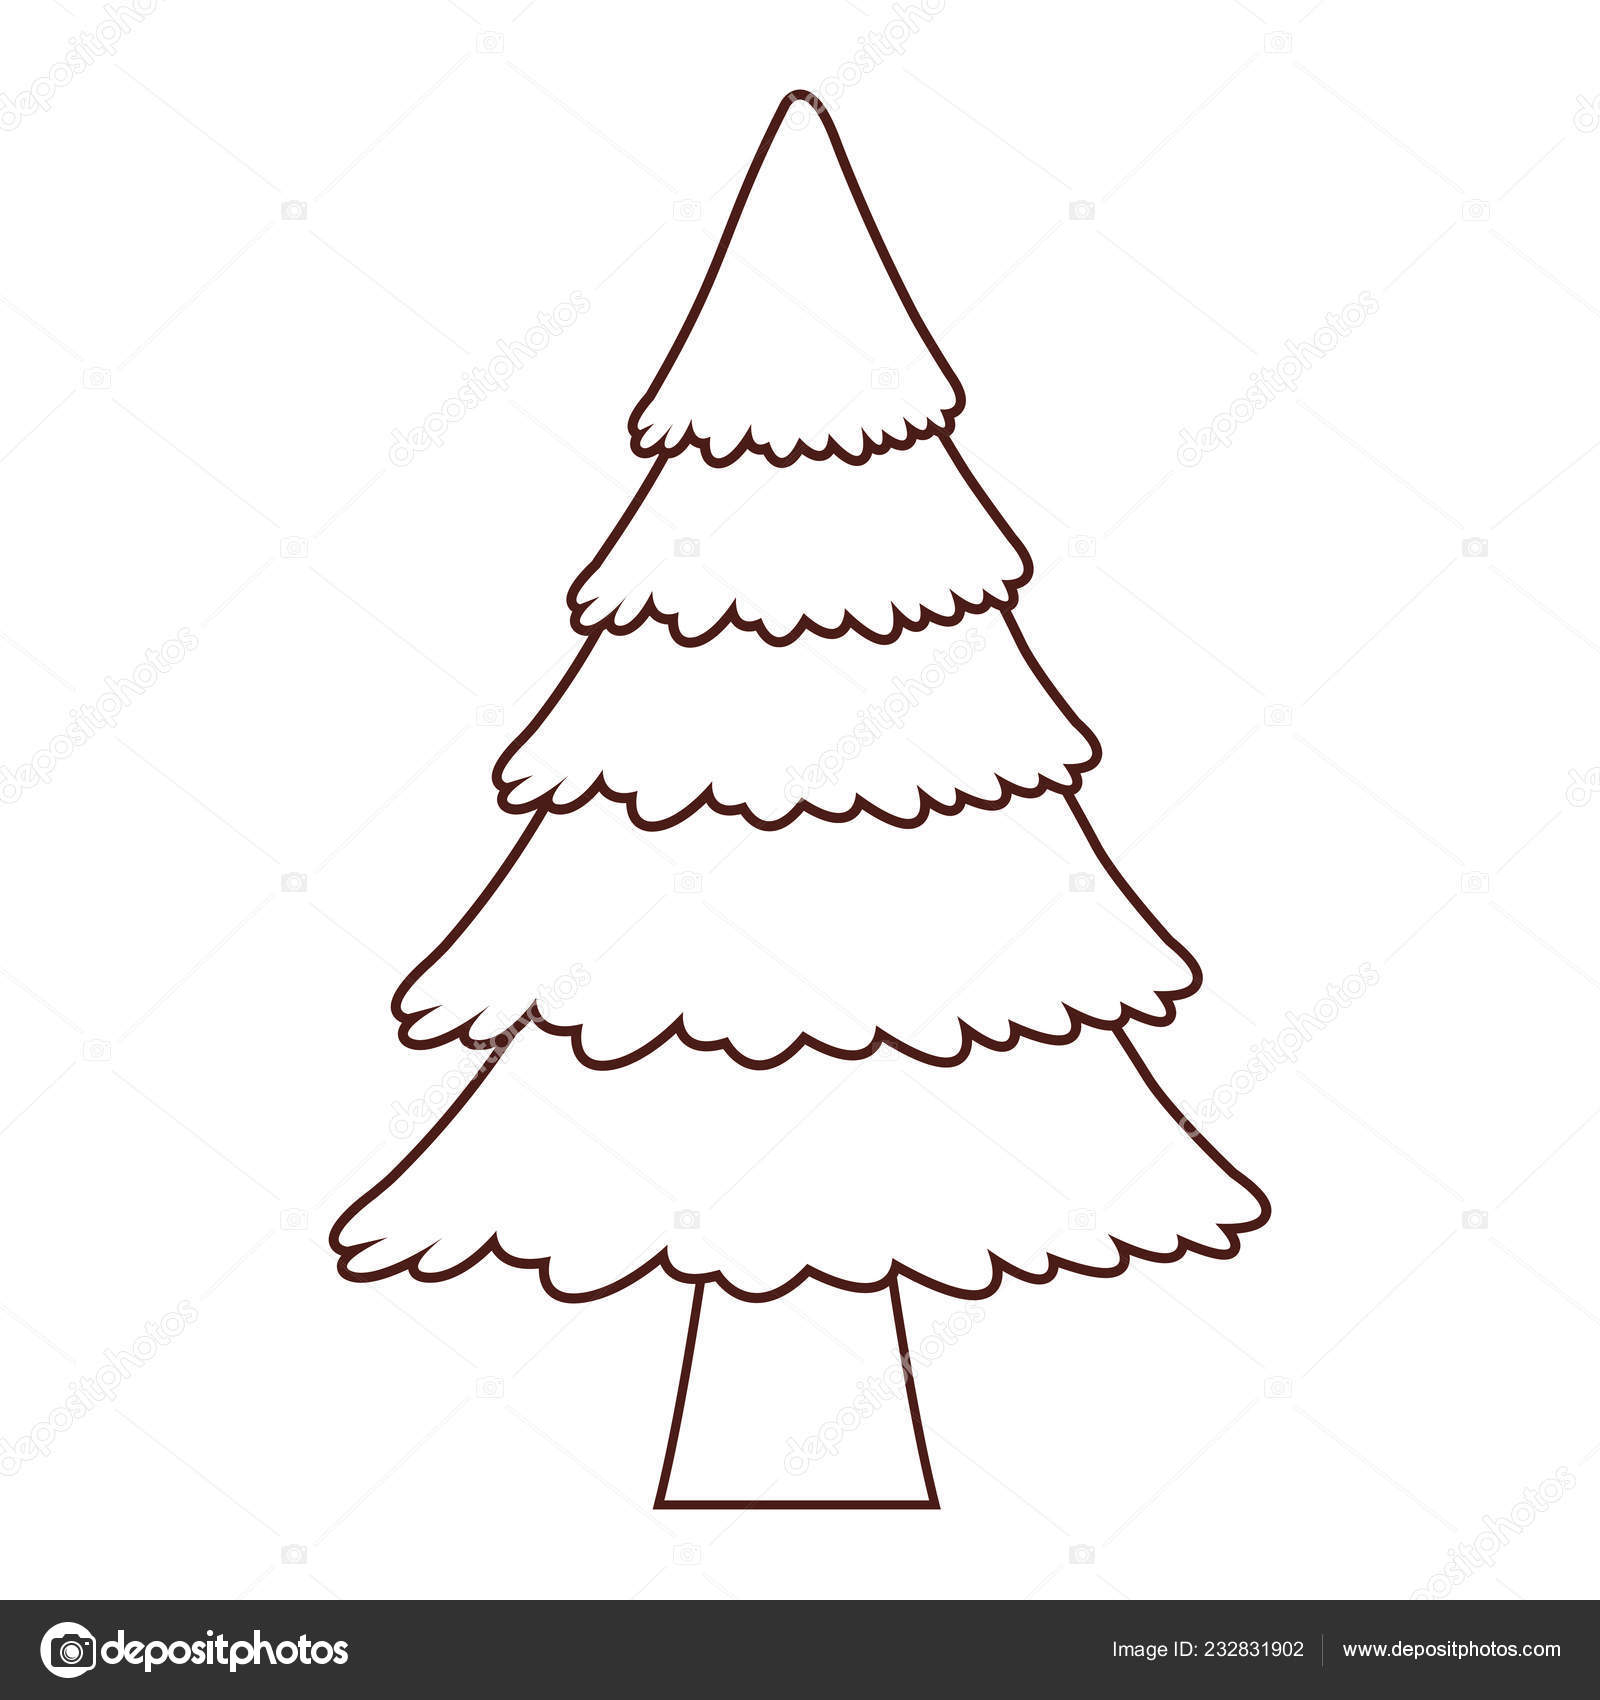 Tree Pine Cartoon Stock Vector C Jemastock 232831902 Browse 1,004 pine tree cartoon stock photos and images available, or start a new search to explore more stock photos and images. https depositphotos com 232831902 stock illustration tree pine cartoon html